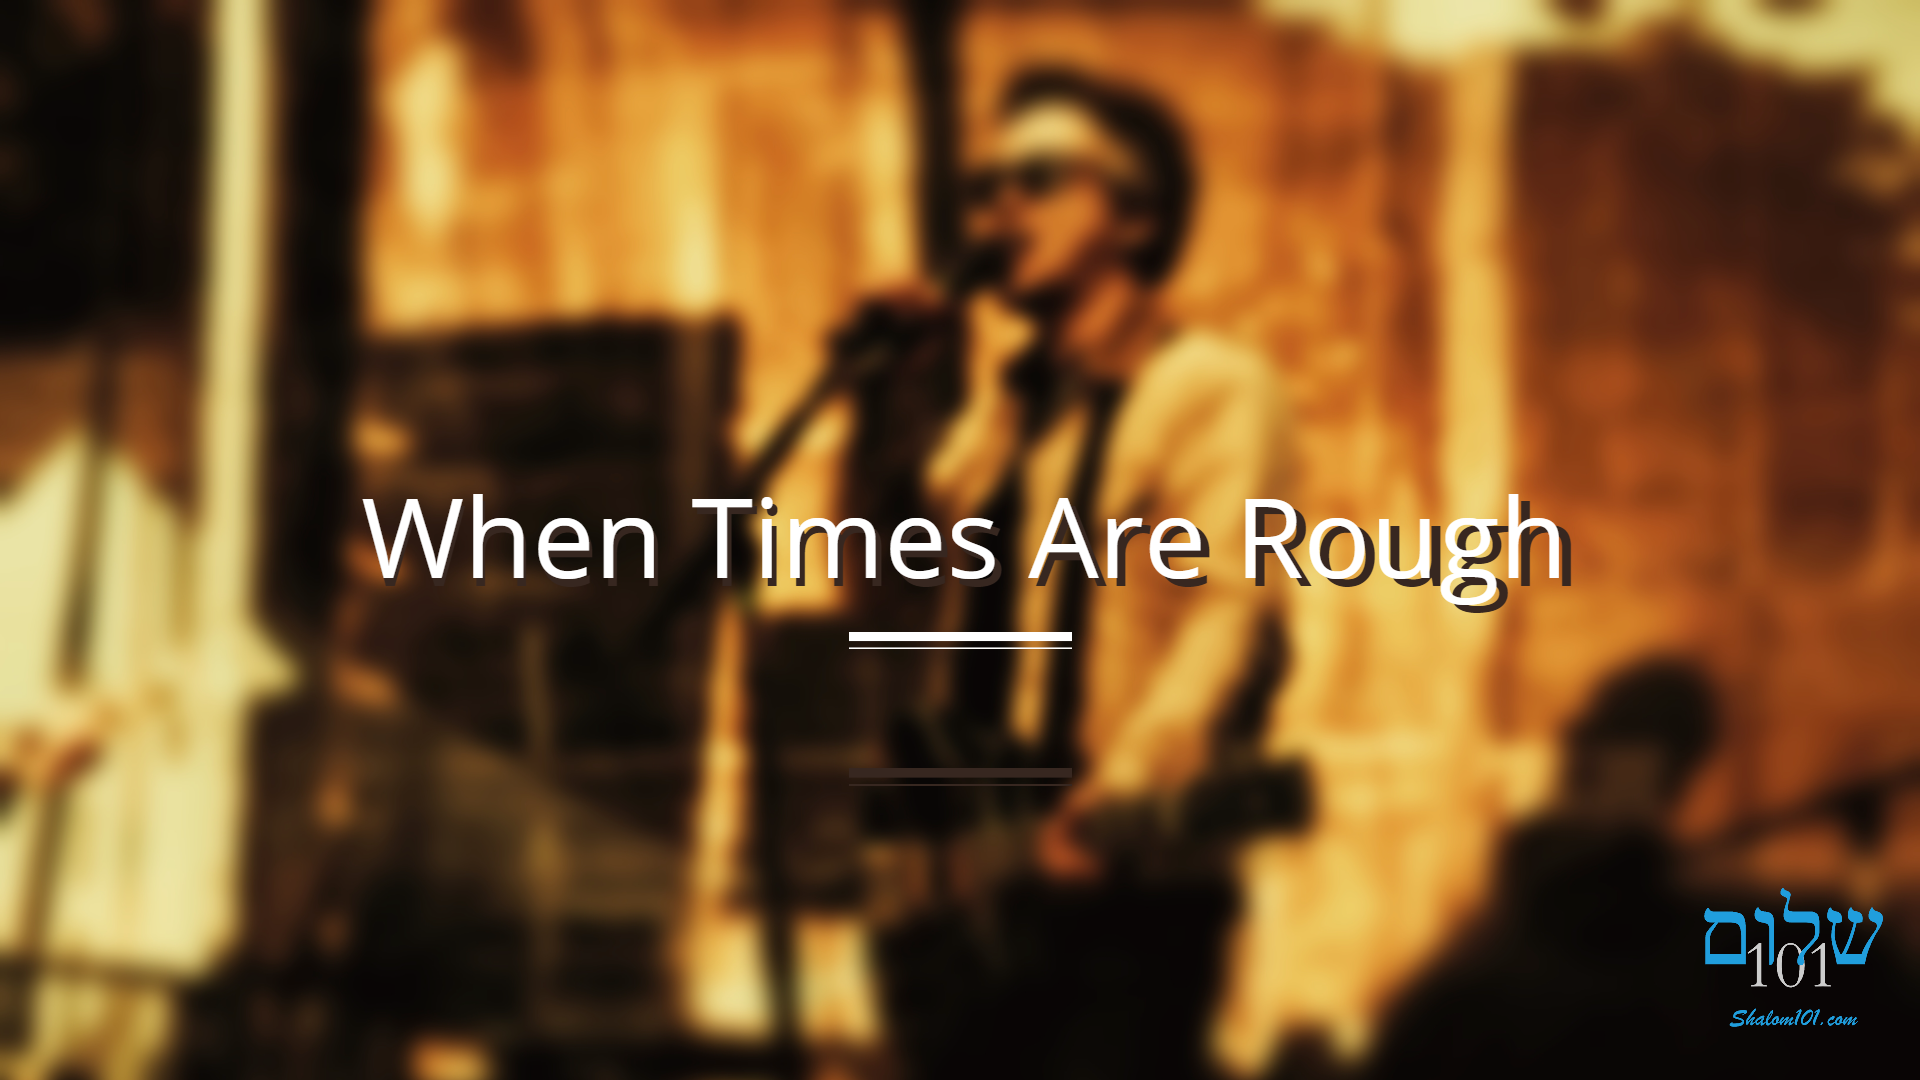 When Times Are Rough by BrodNeil of Shalom101.com